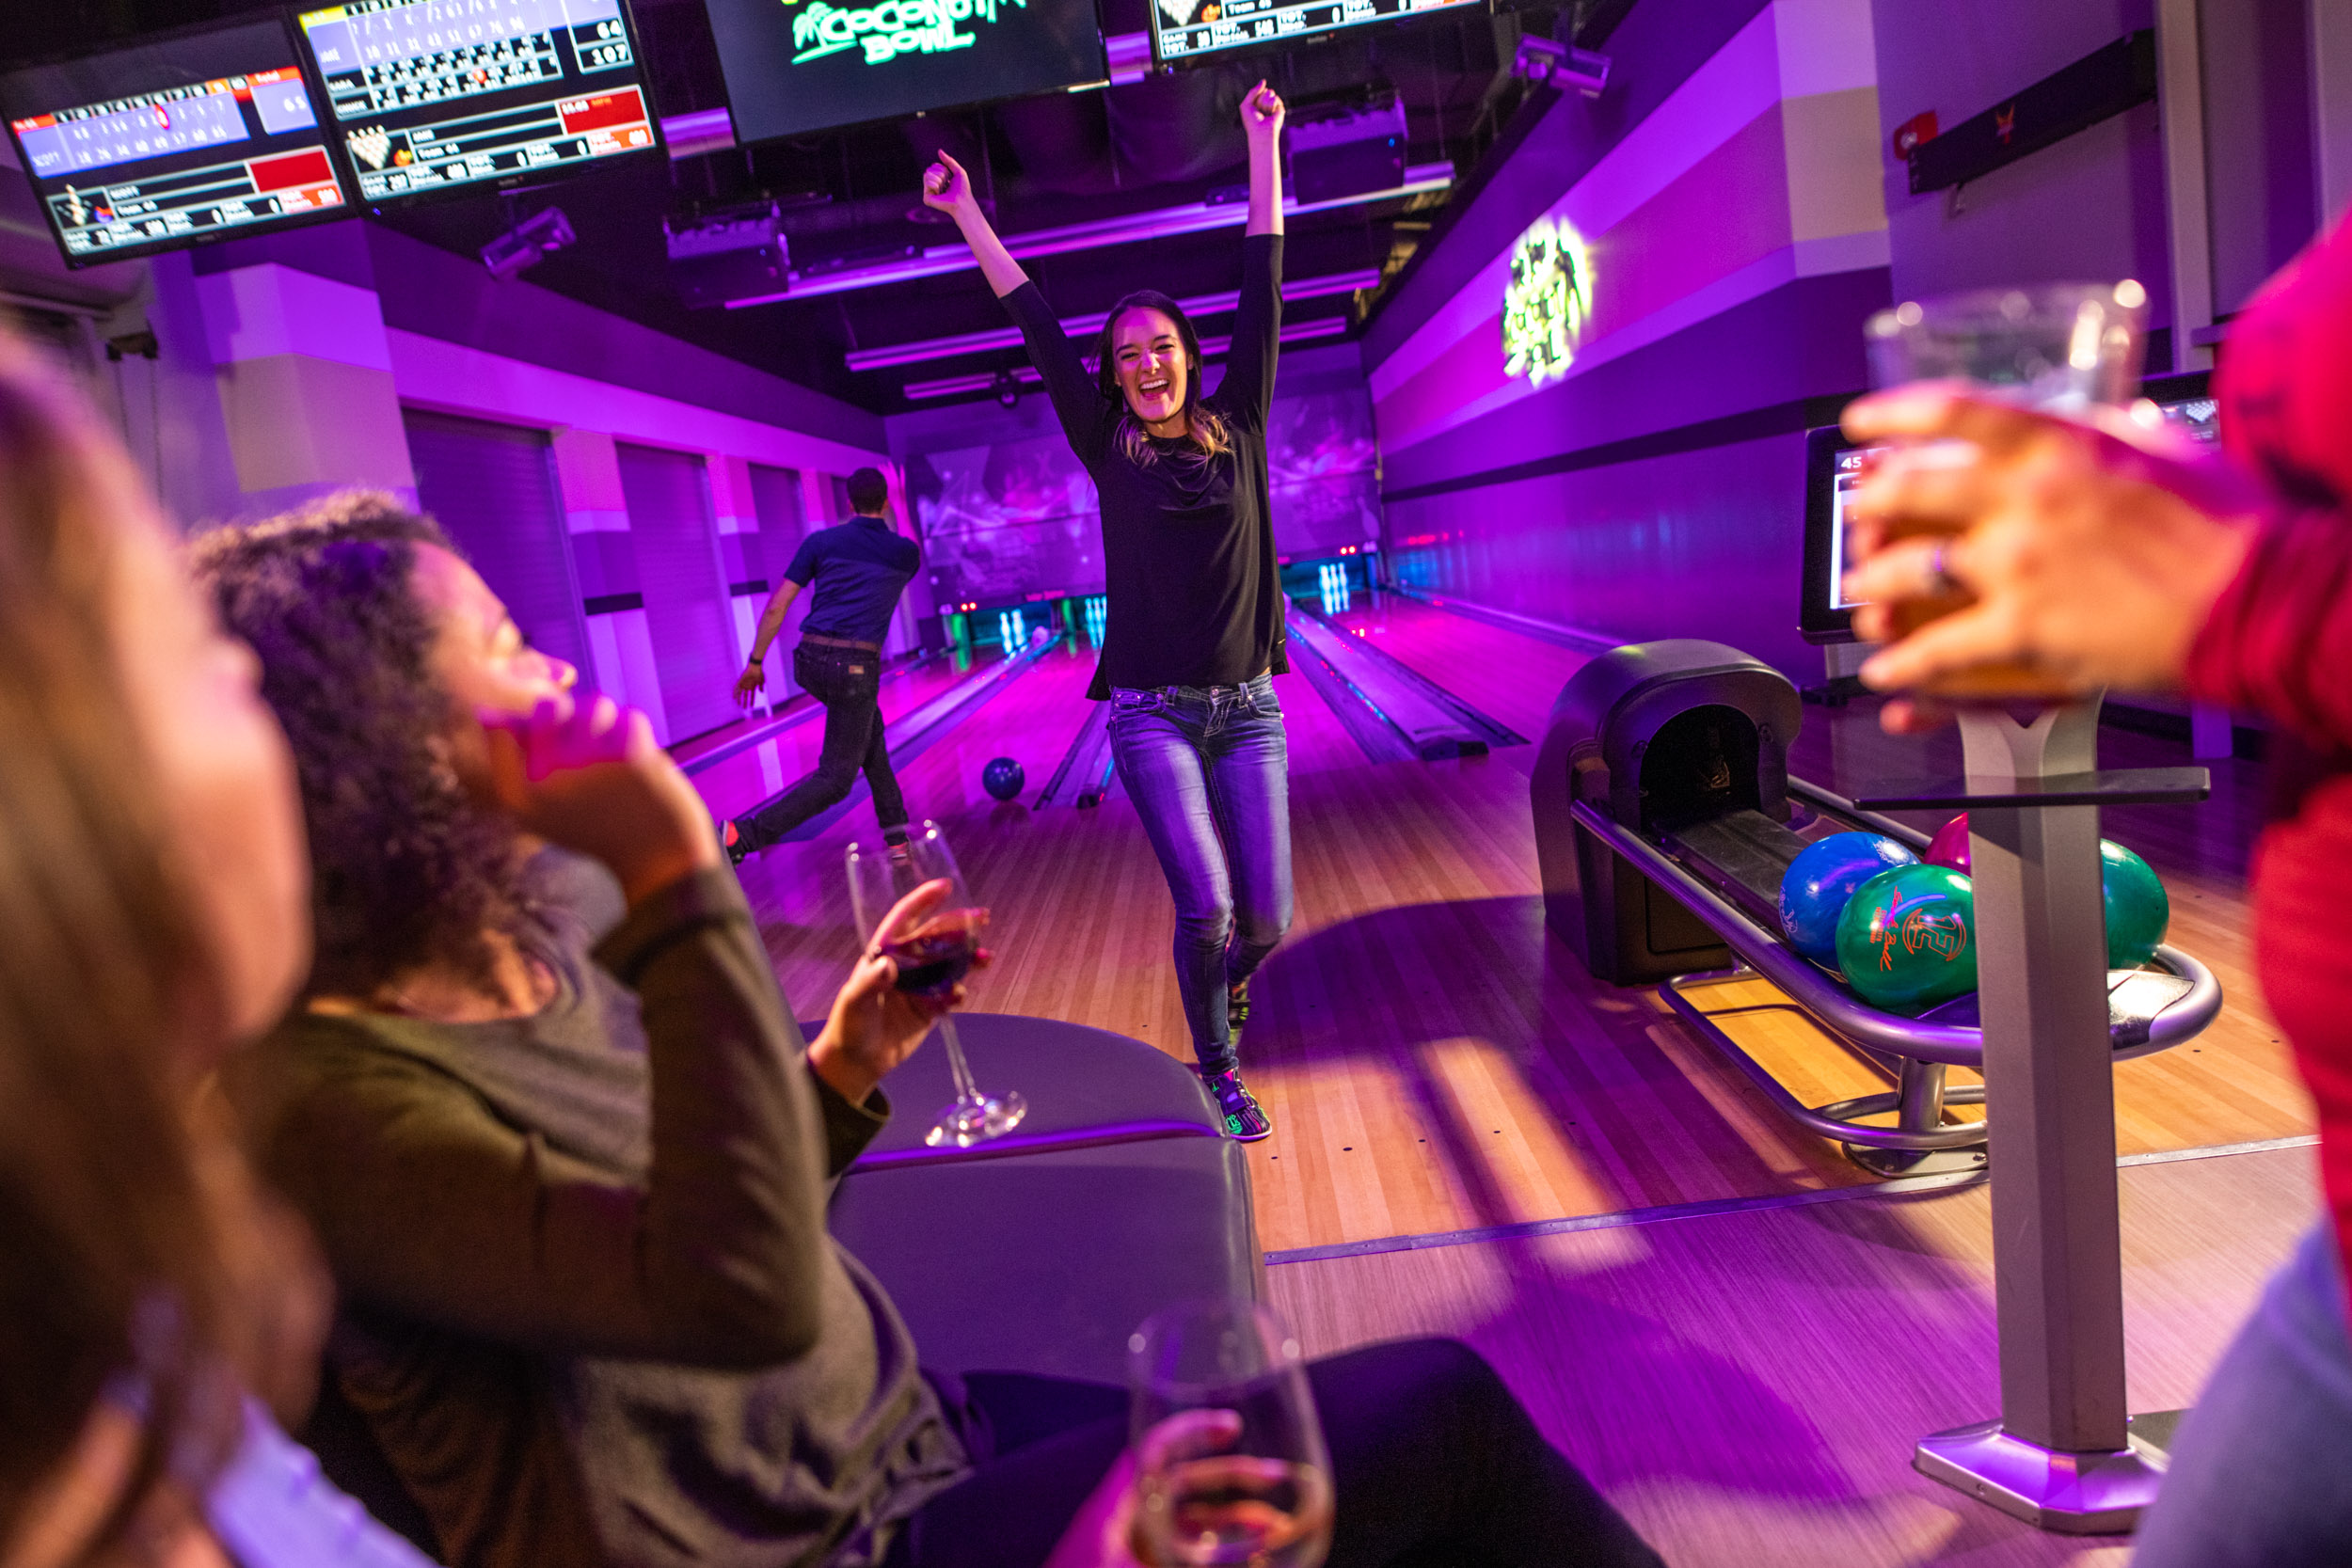 Woman celebrate at black light bowling.